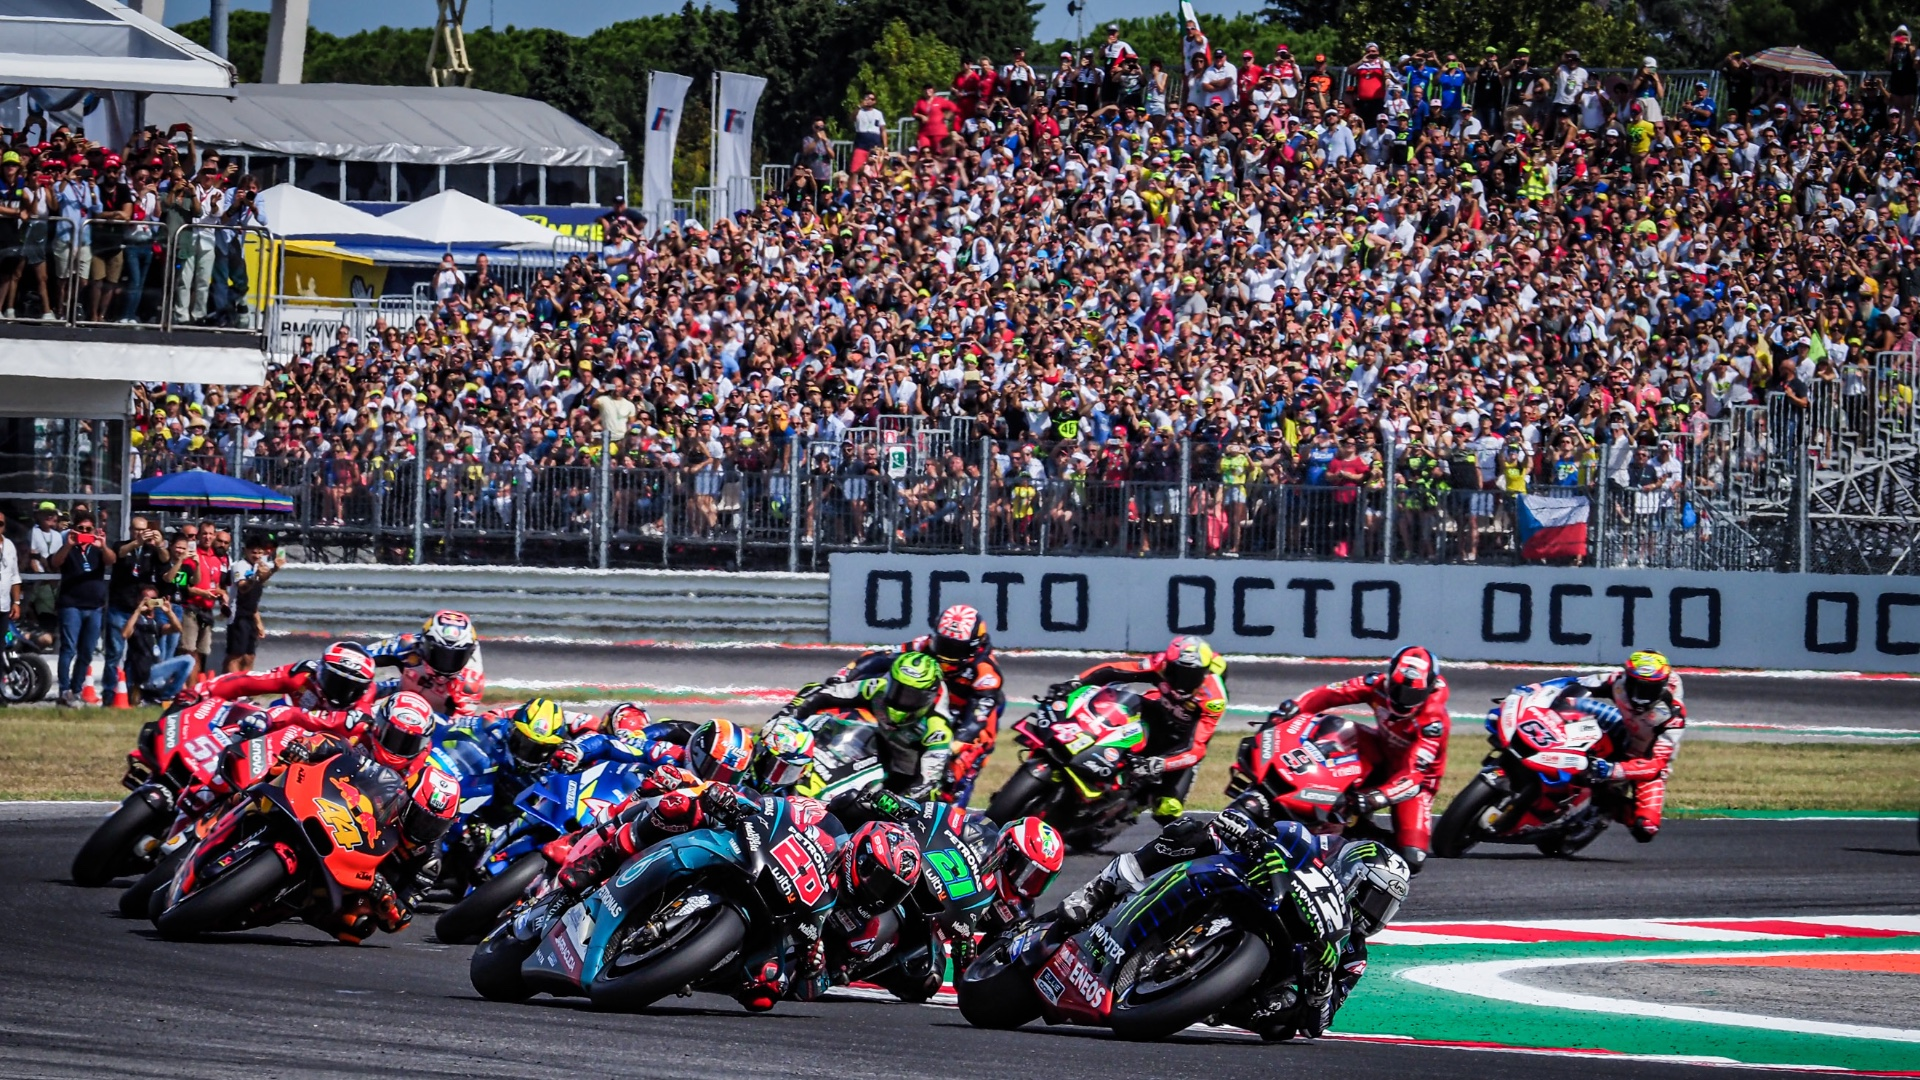 Misano World Circuit: the 2020 schedule of events and races.